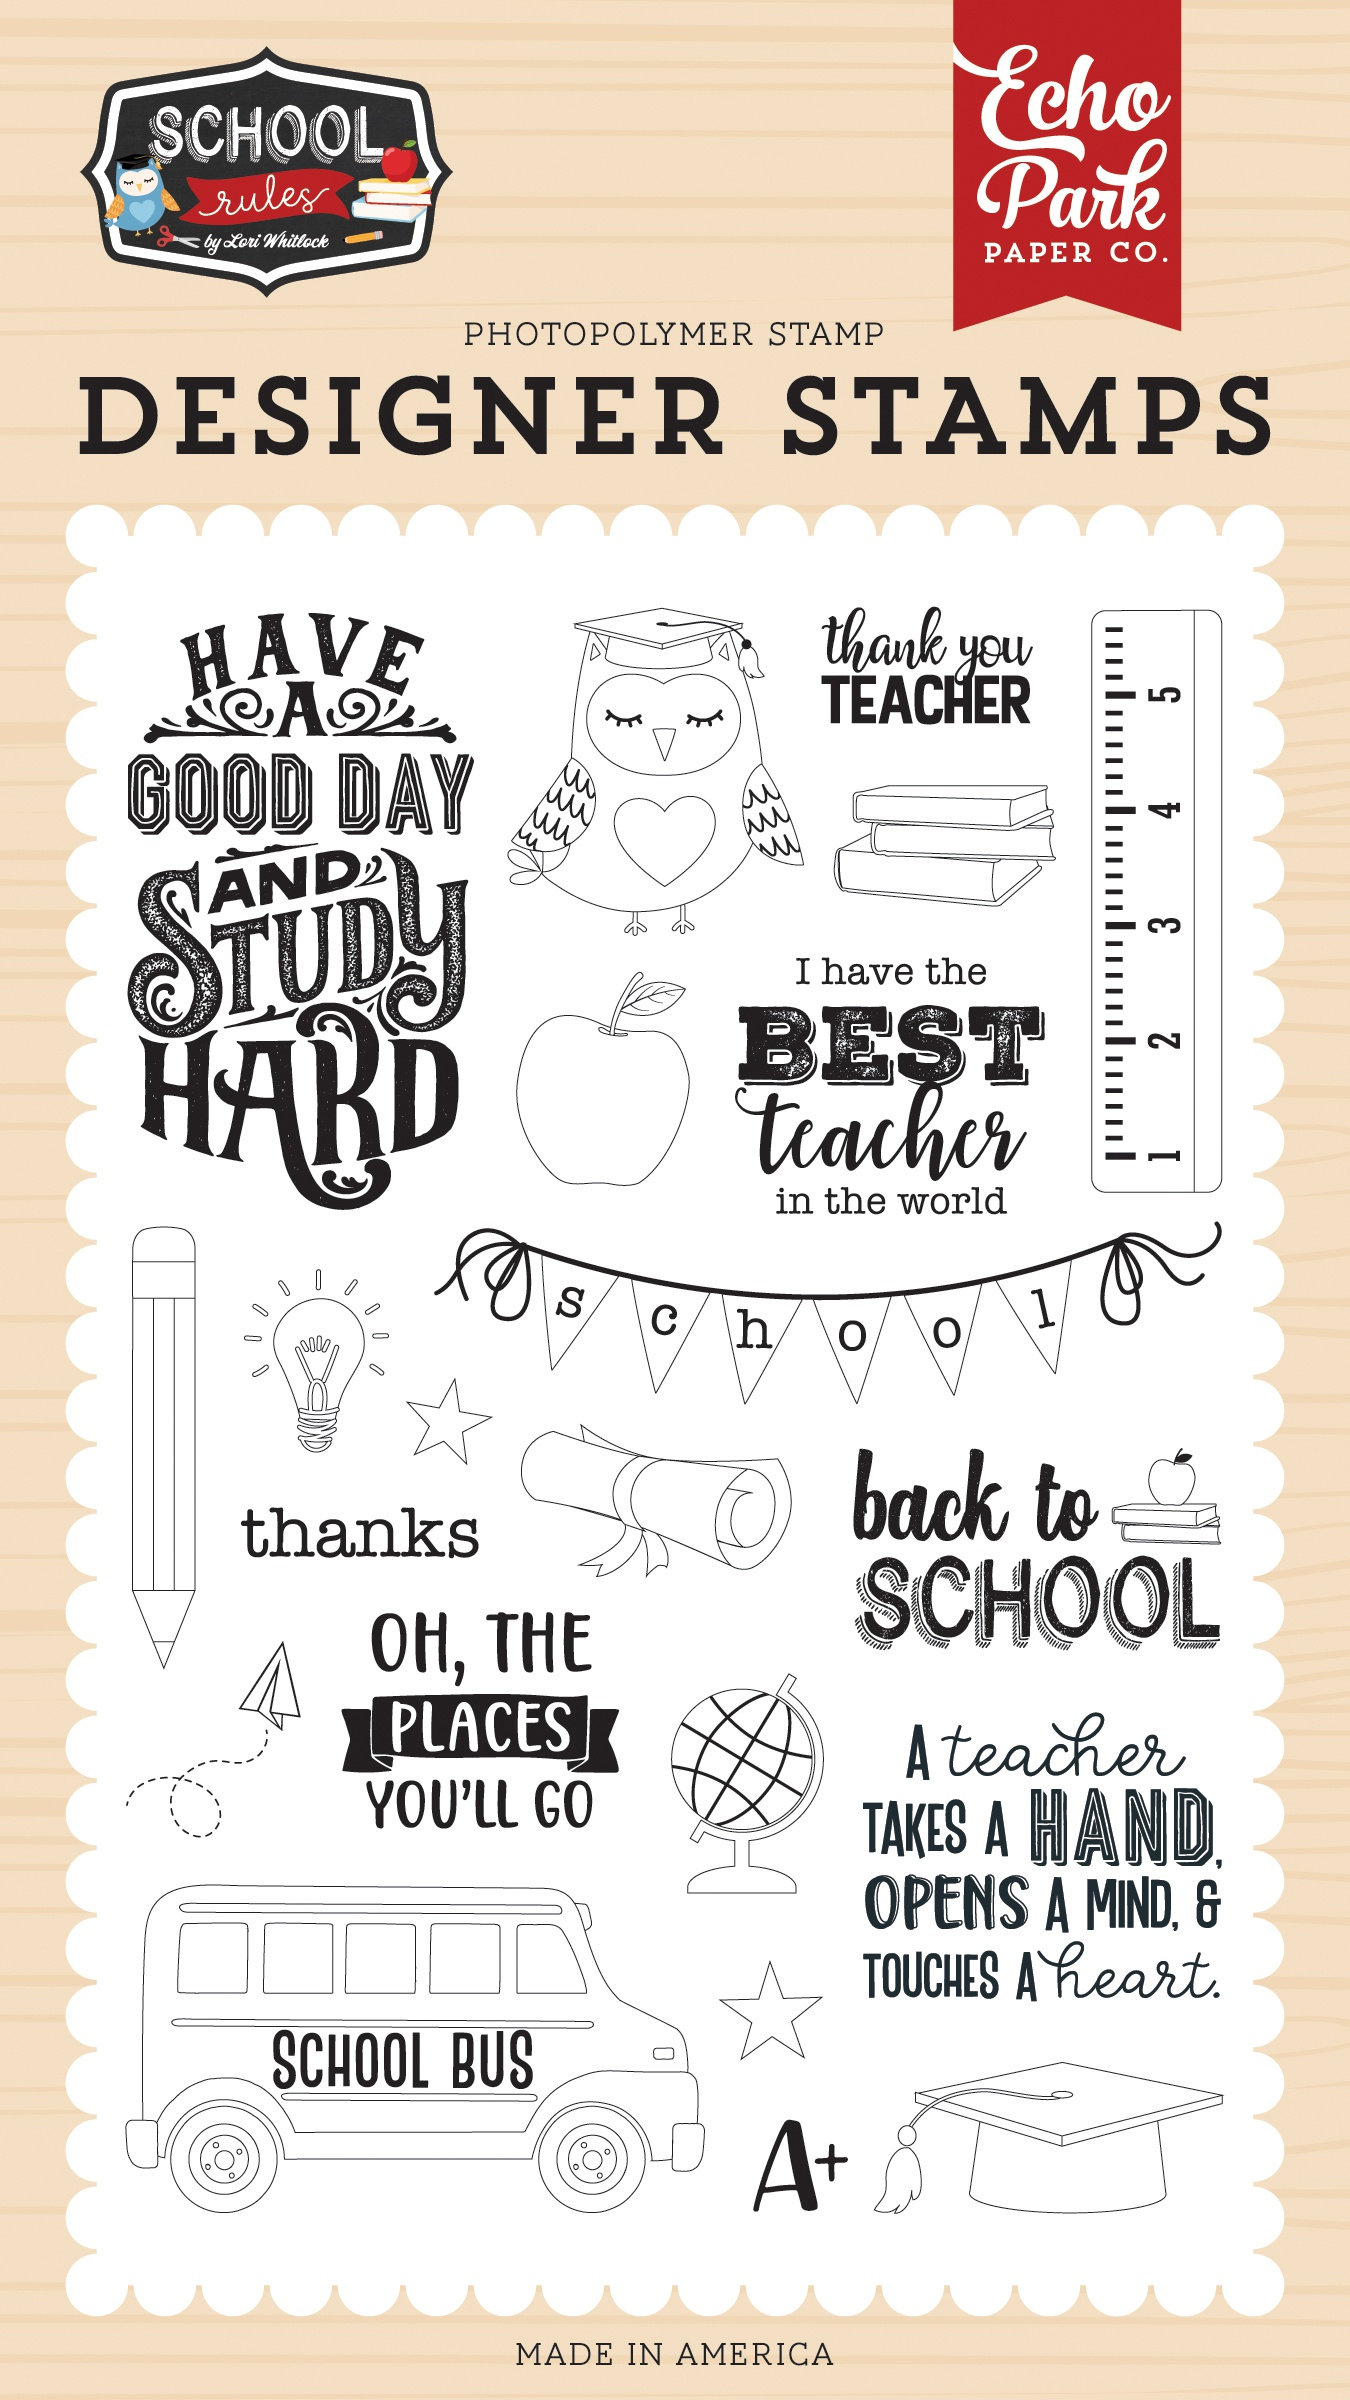 Echo Park School Rules - Study Hard Stamp Set